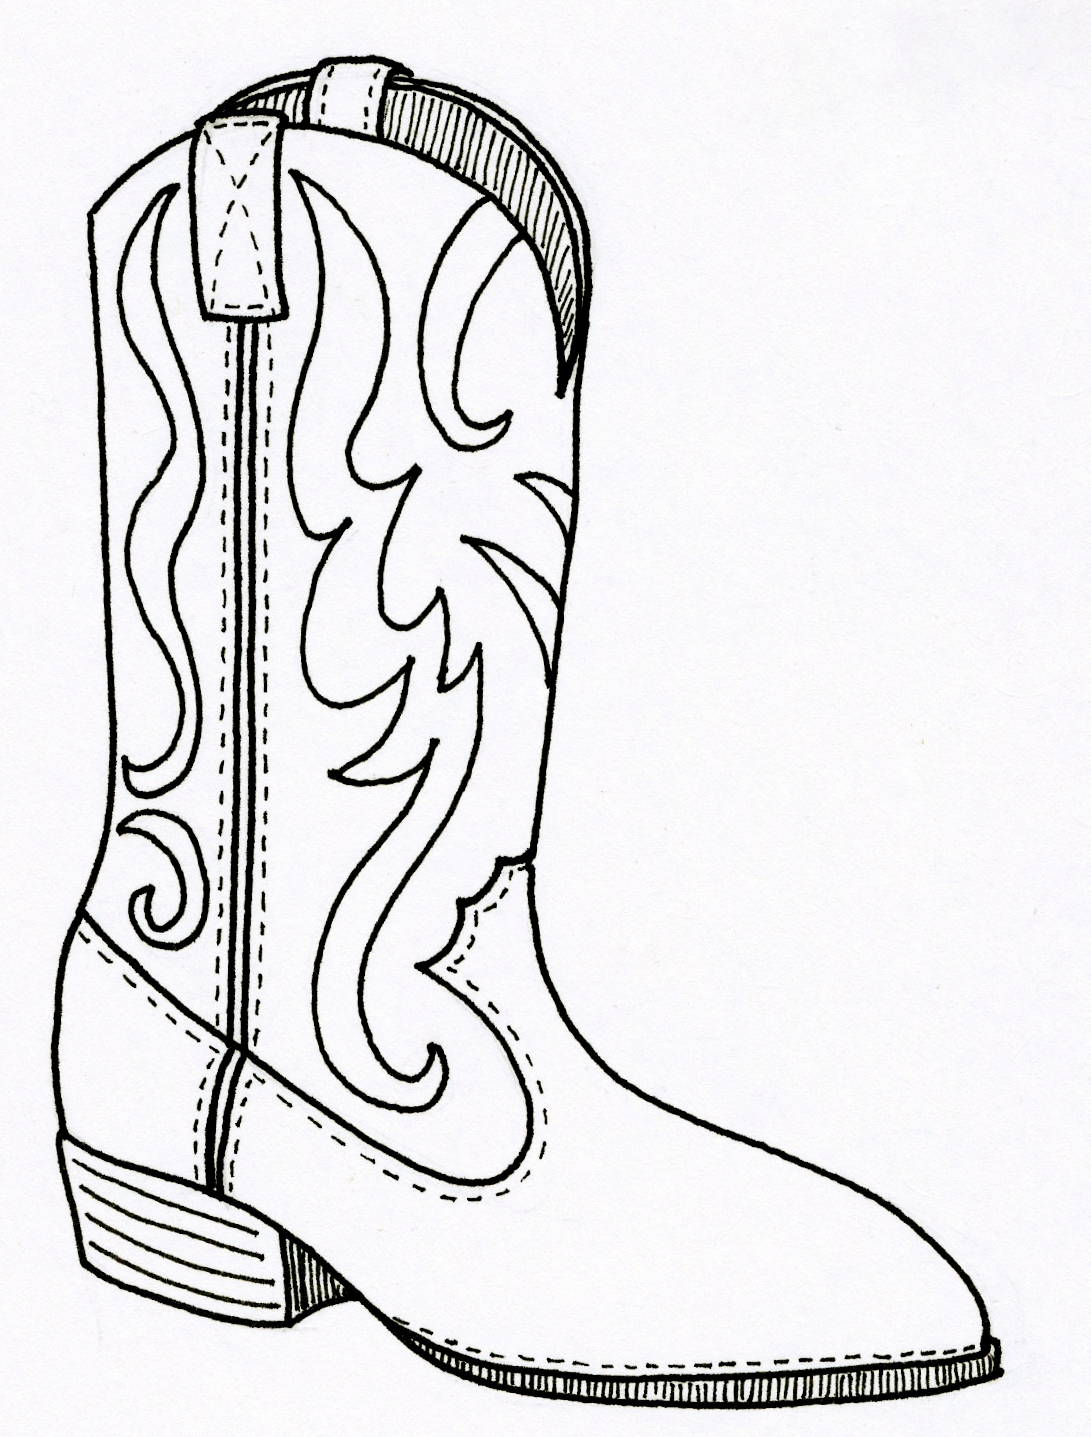 Cowboy Boots Images - Cliparts.co